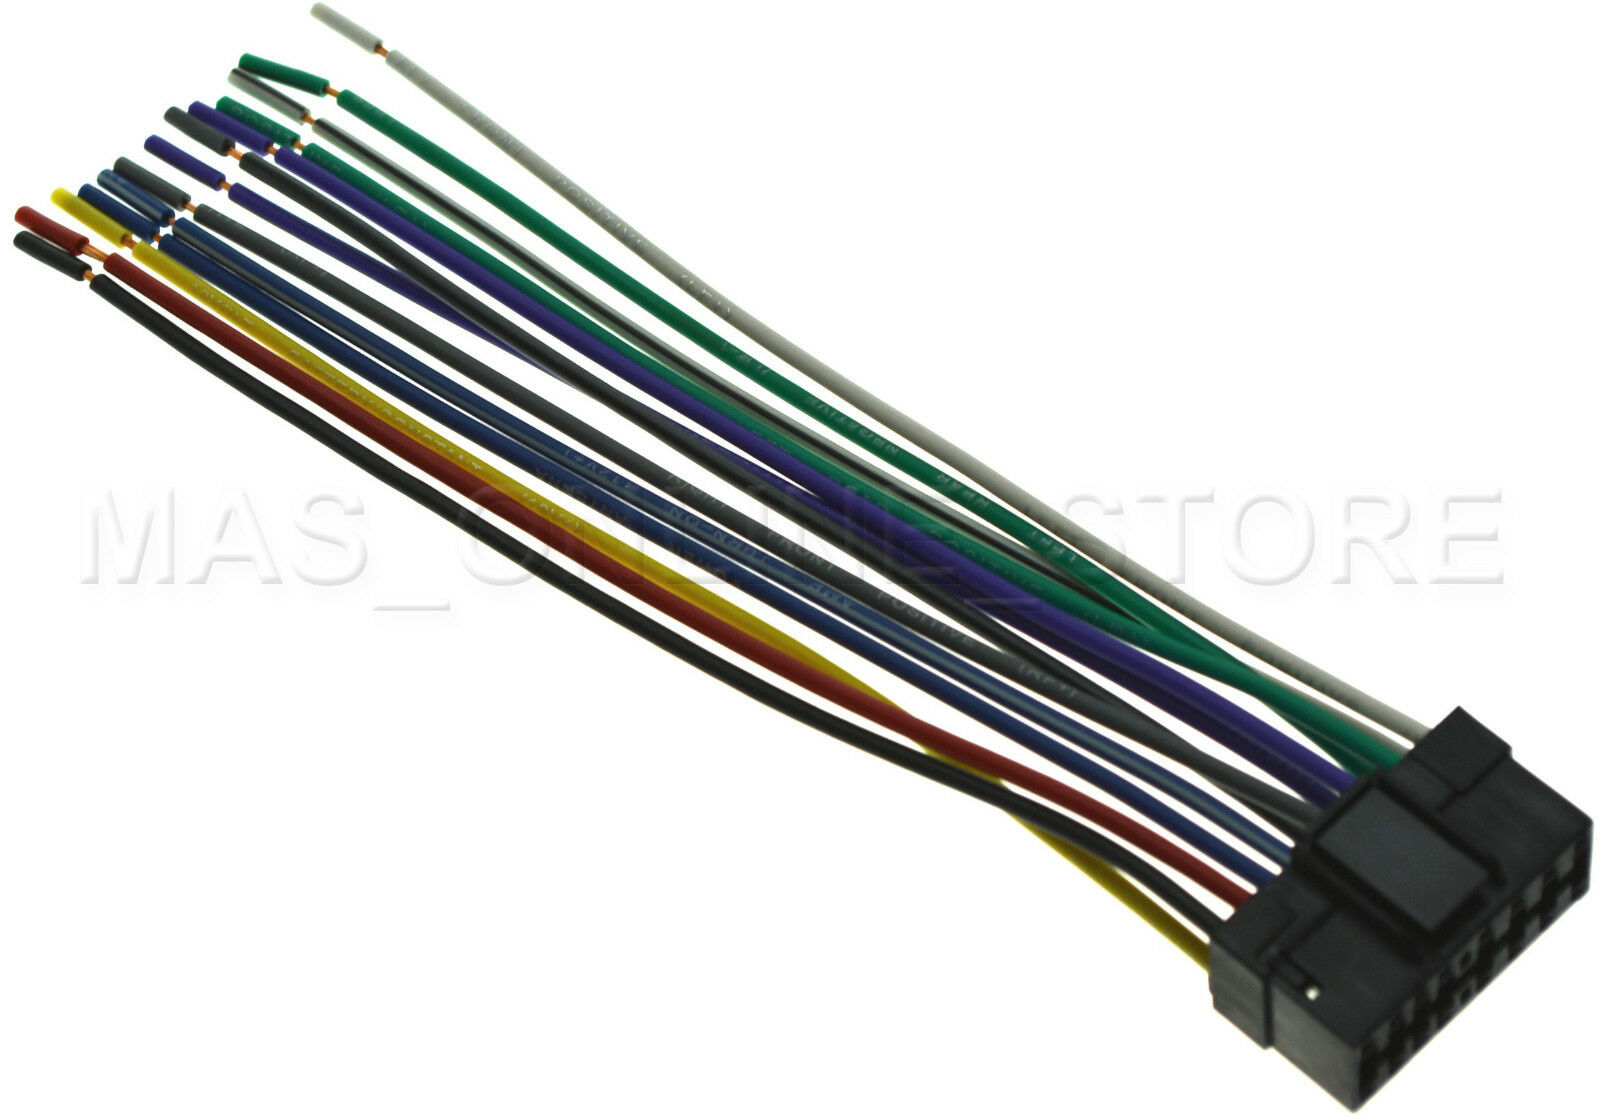 Wire Harness For Sony Cdx-Gt350Mp Cdxgt350Mp Cdx-Gt360Mp Cdxgt360Mp 1 of  5Only 2 available ...